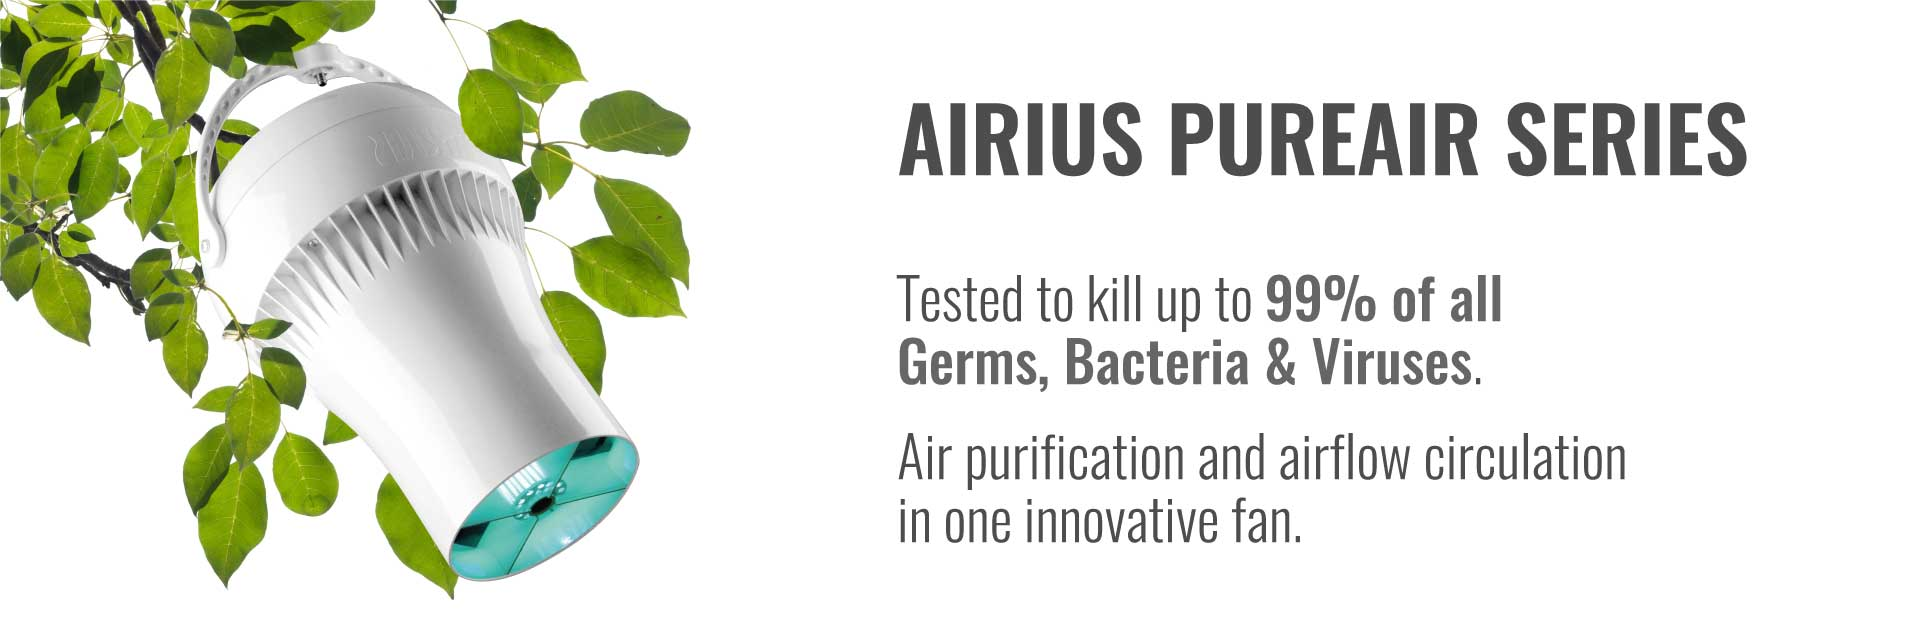 Airius PureAir Kills Coronaviruses and PHI Kills Viruses